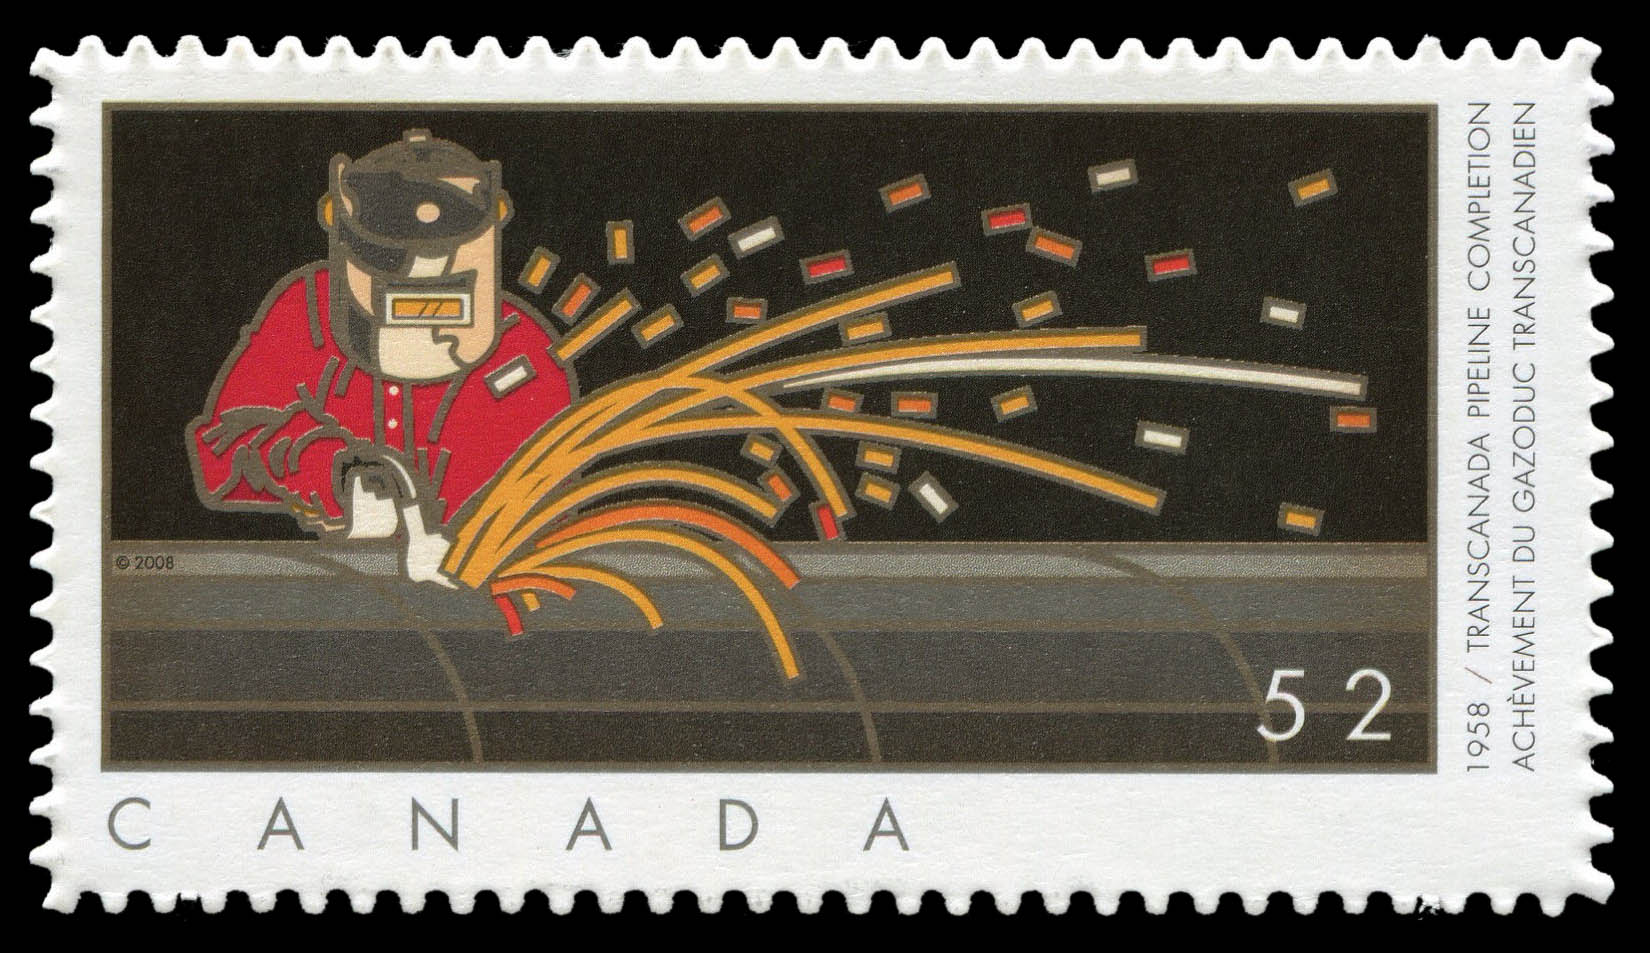 Transcanada Pipeline Completion - 1958 Canada Postage Stamp | Industries: Oil and Gas